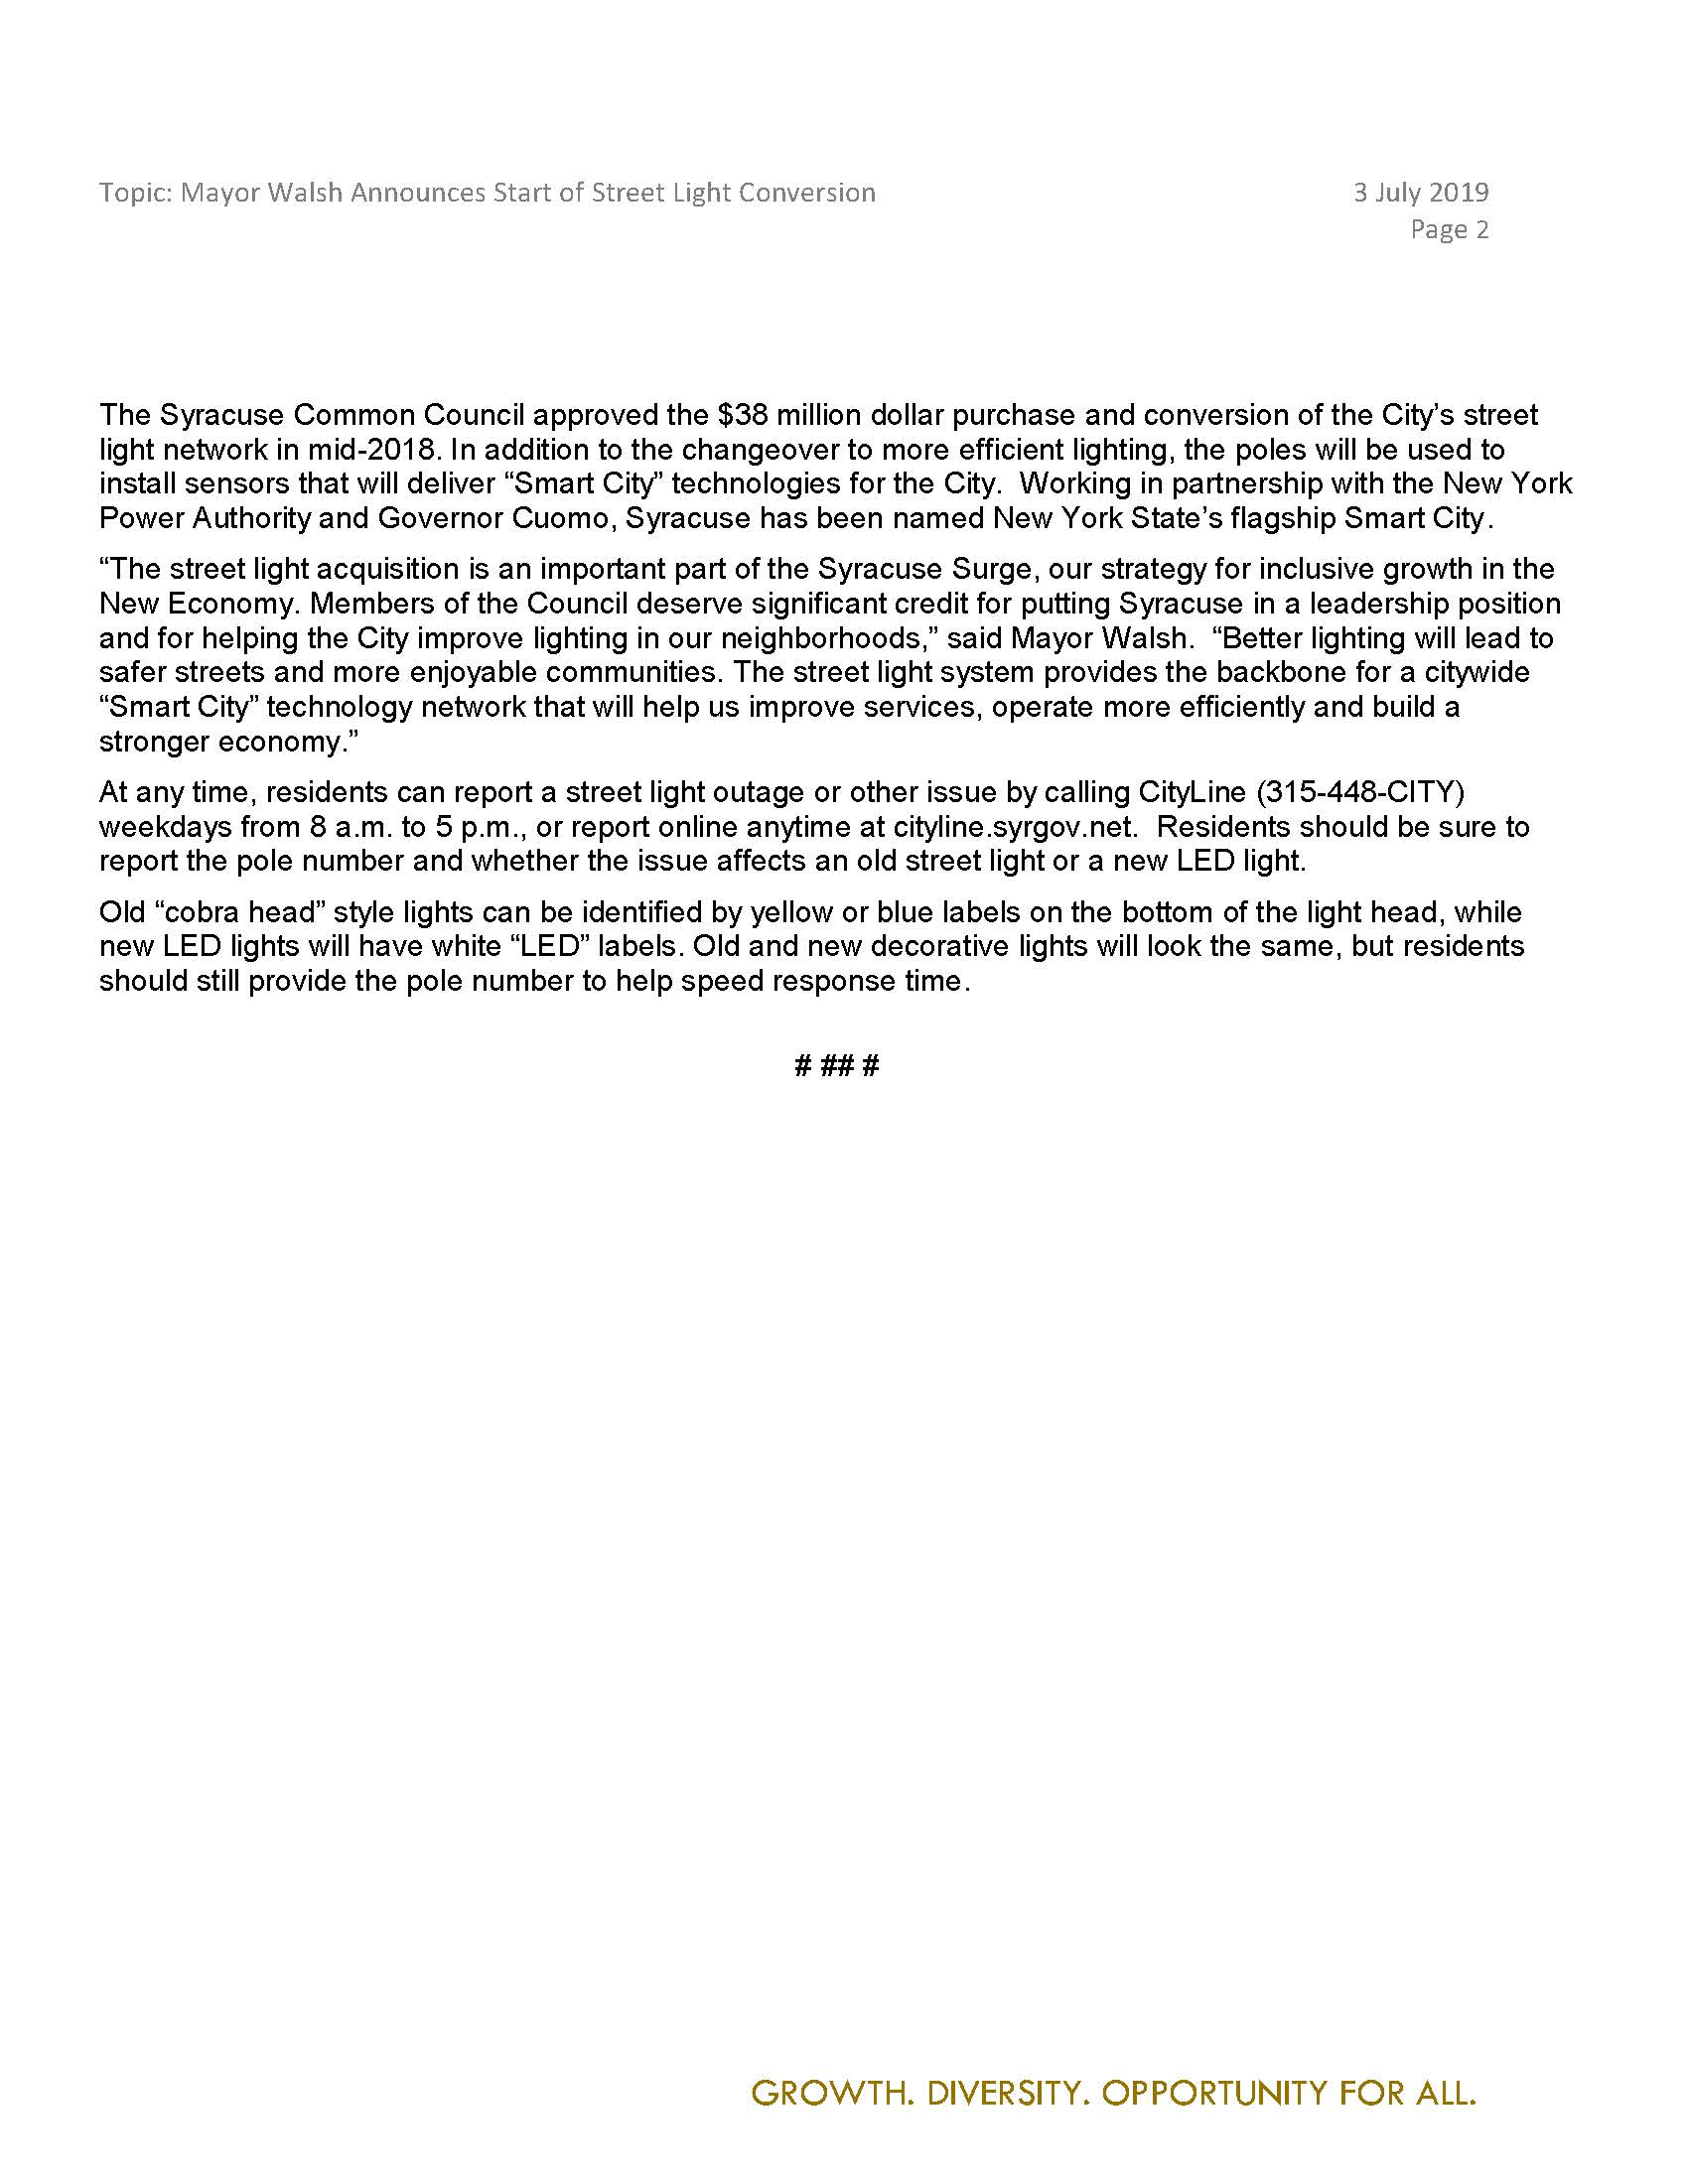 2019 07 03 PRESS RELEASE Mayor Walsh Announces Start of Street Light Conversion_Page_2.jpg